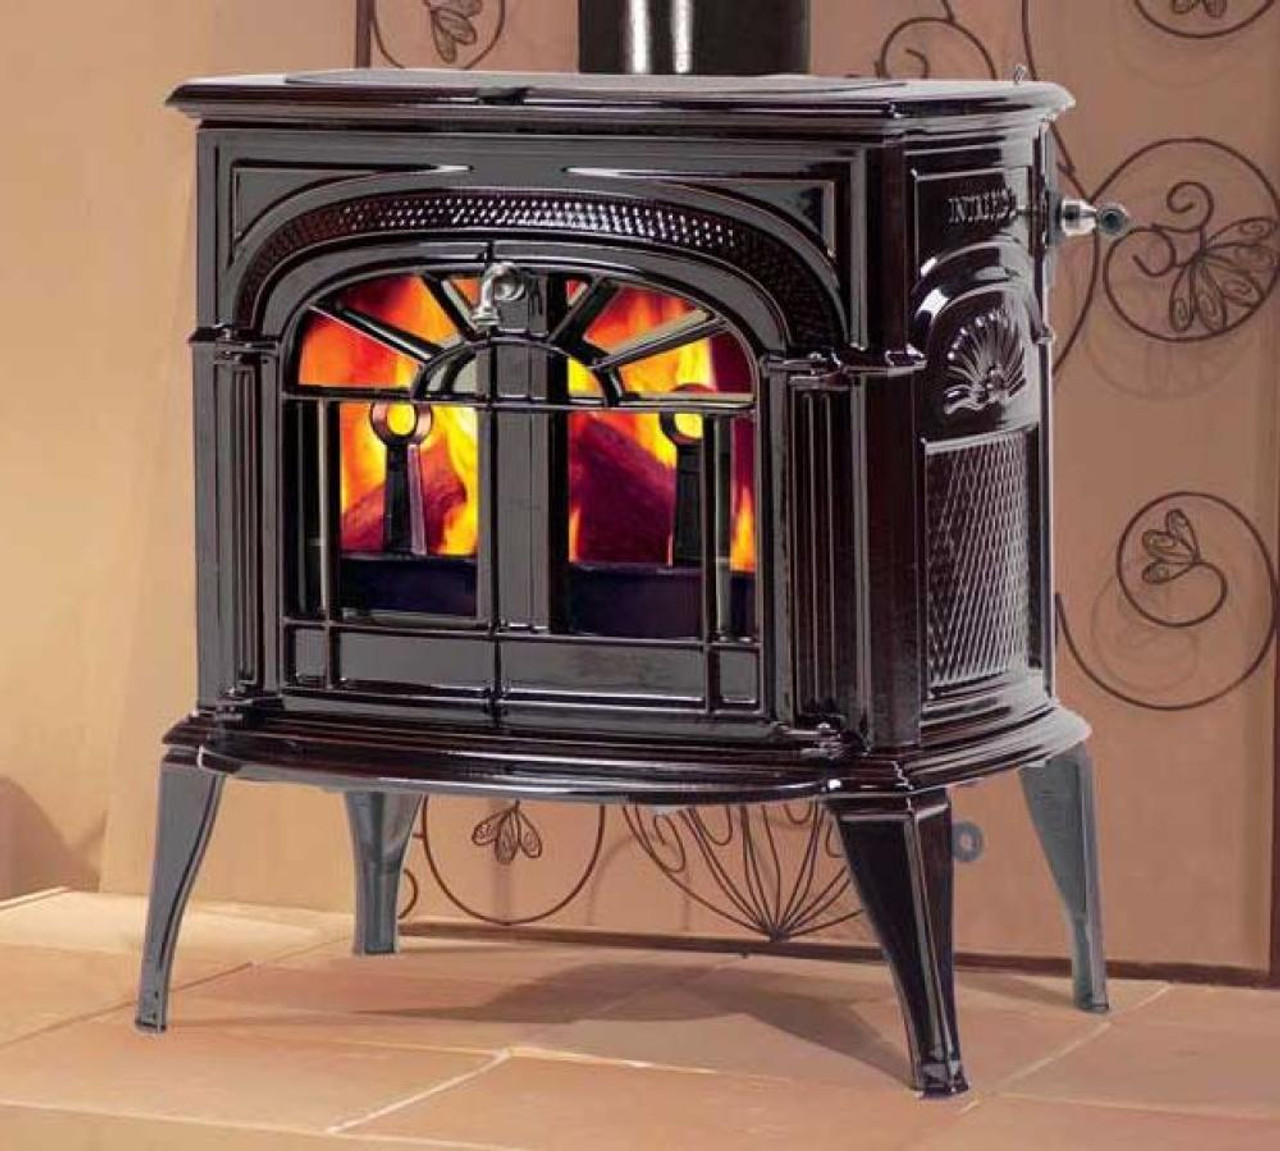 small resolution of vermont castings intrepid direct vent gas stove embers fireplaces outdoor living